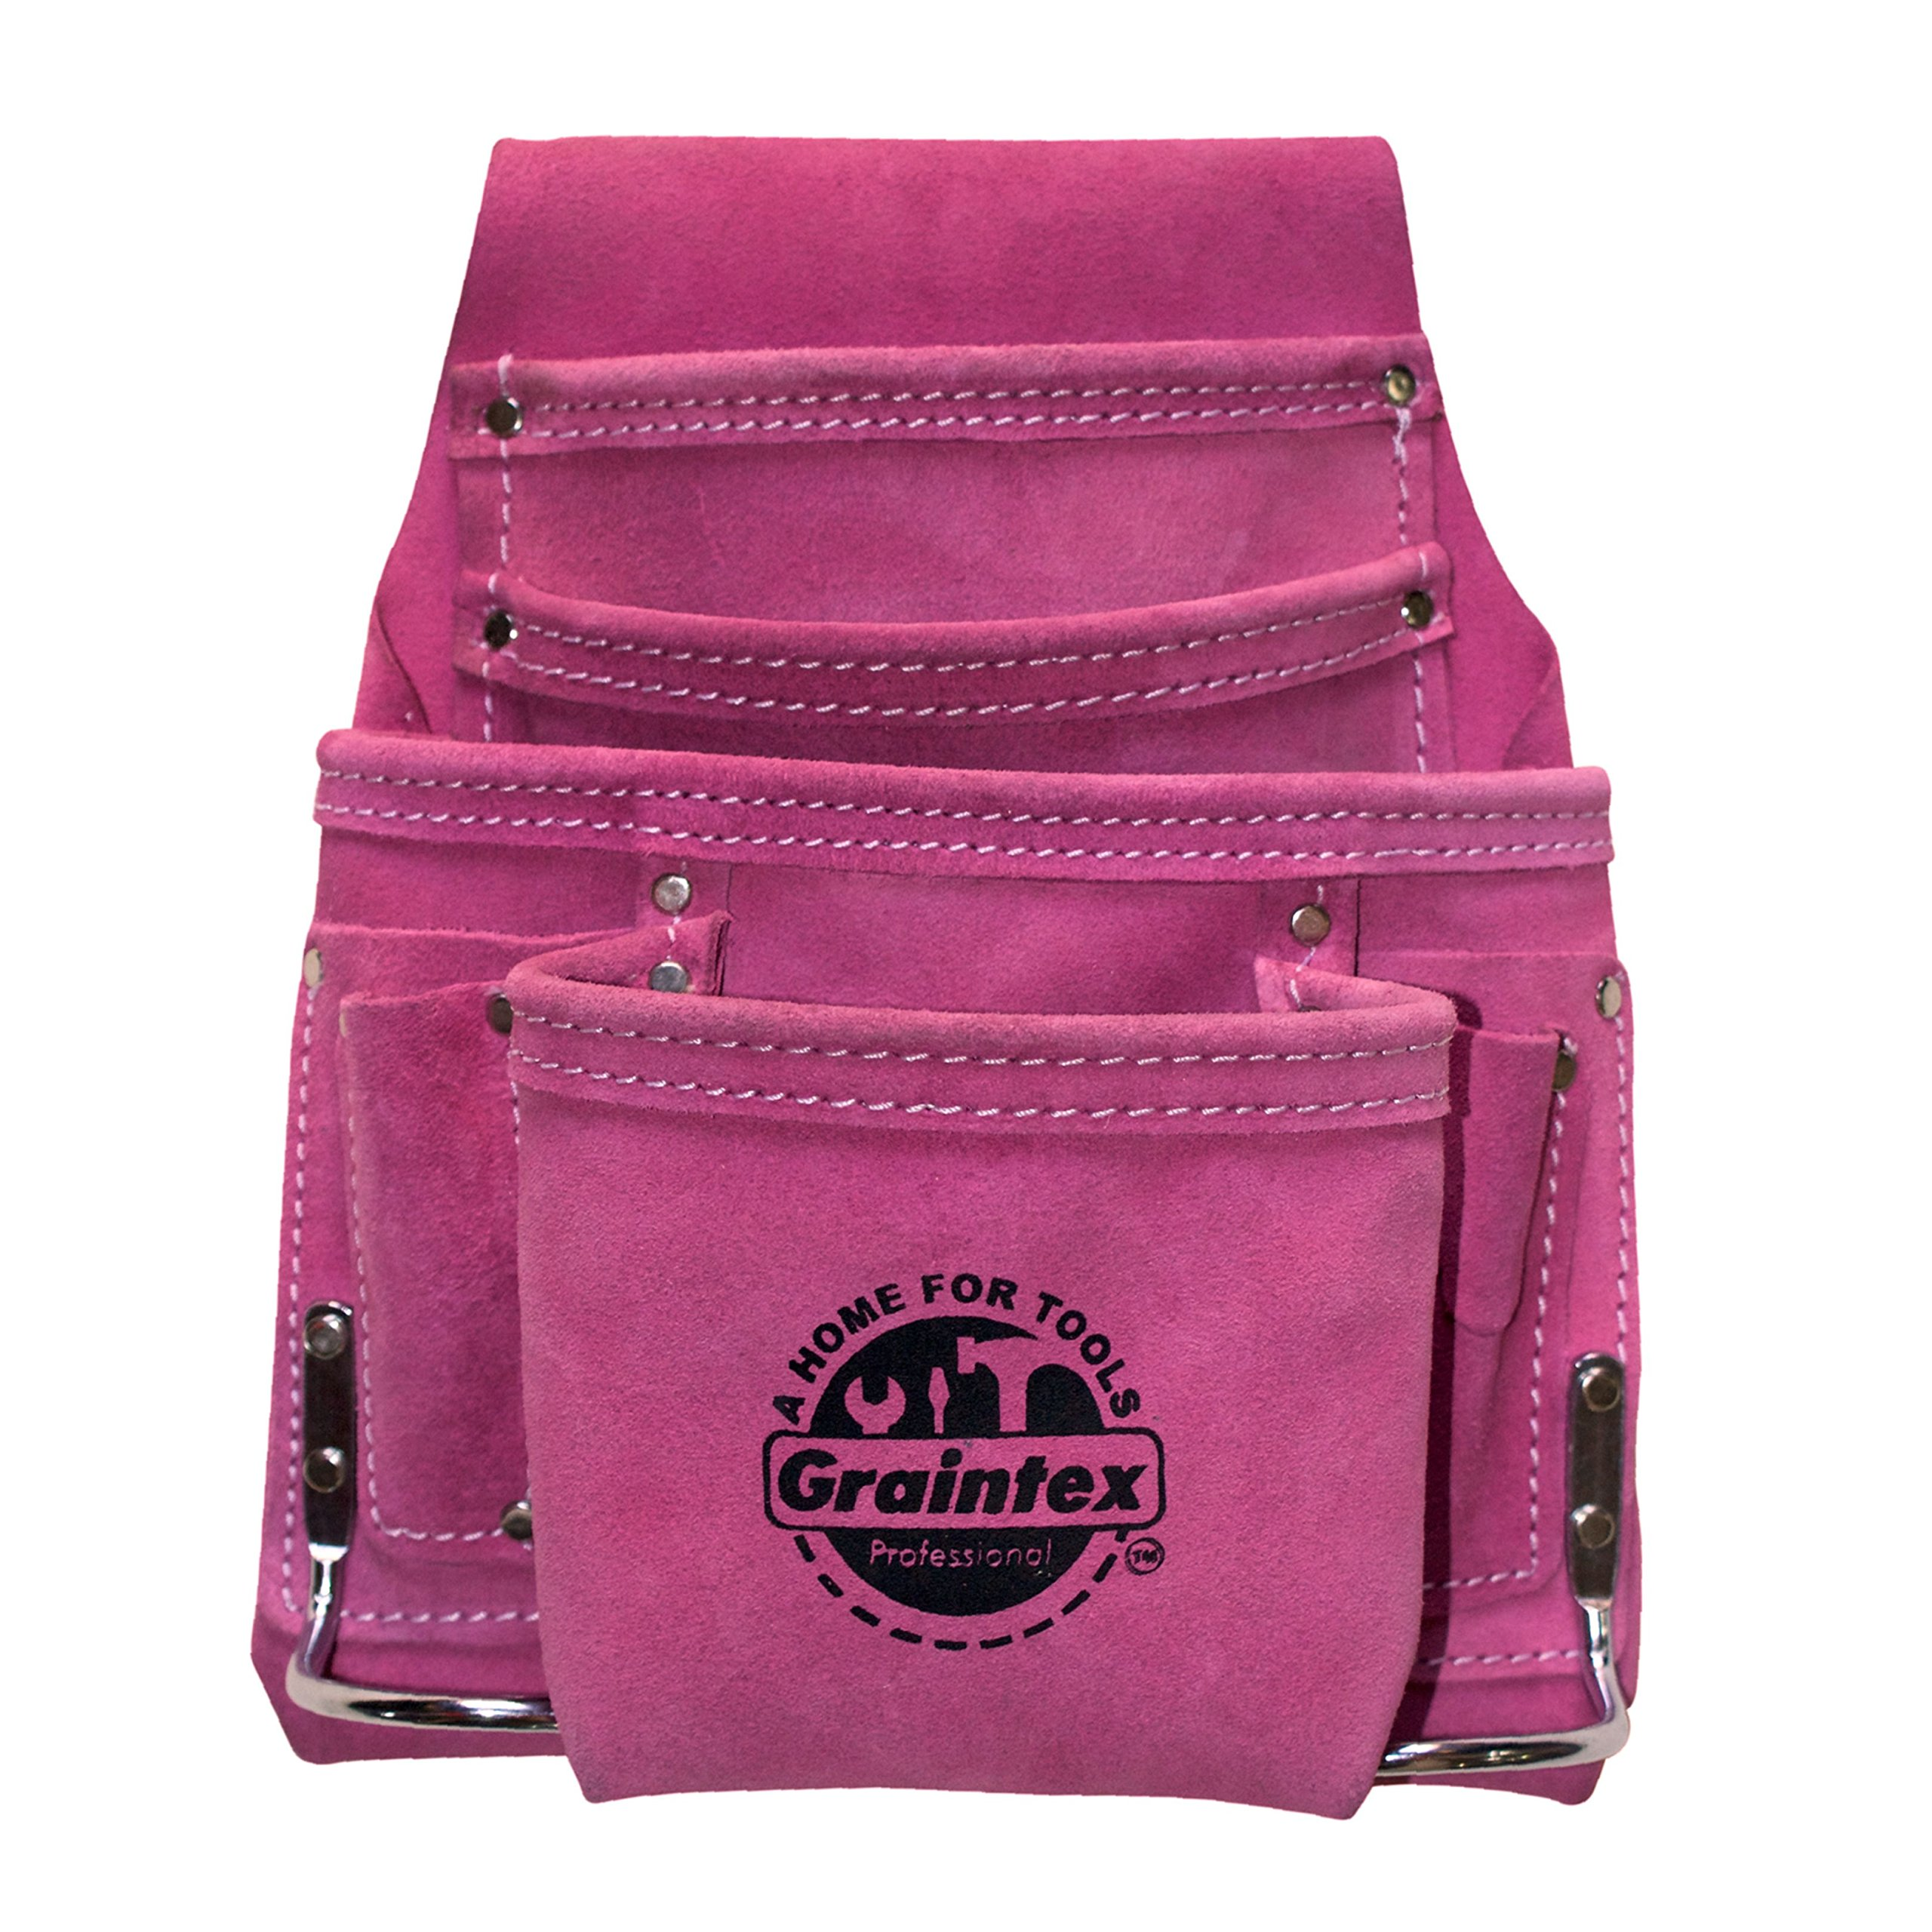 Graintex SS1186 Pink Leather 10 Pocket Tool Pouch